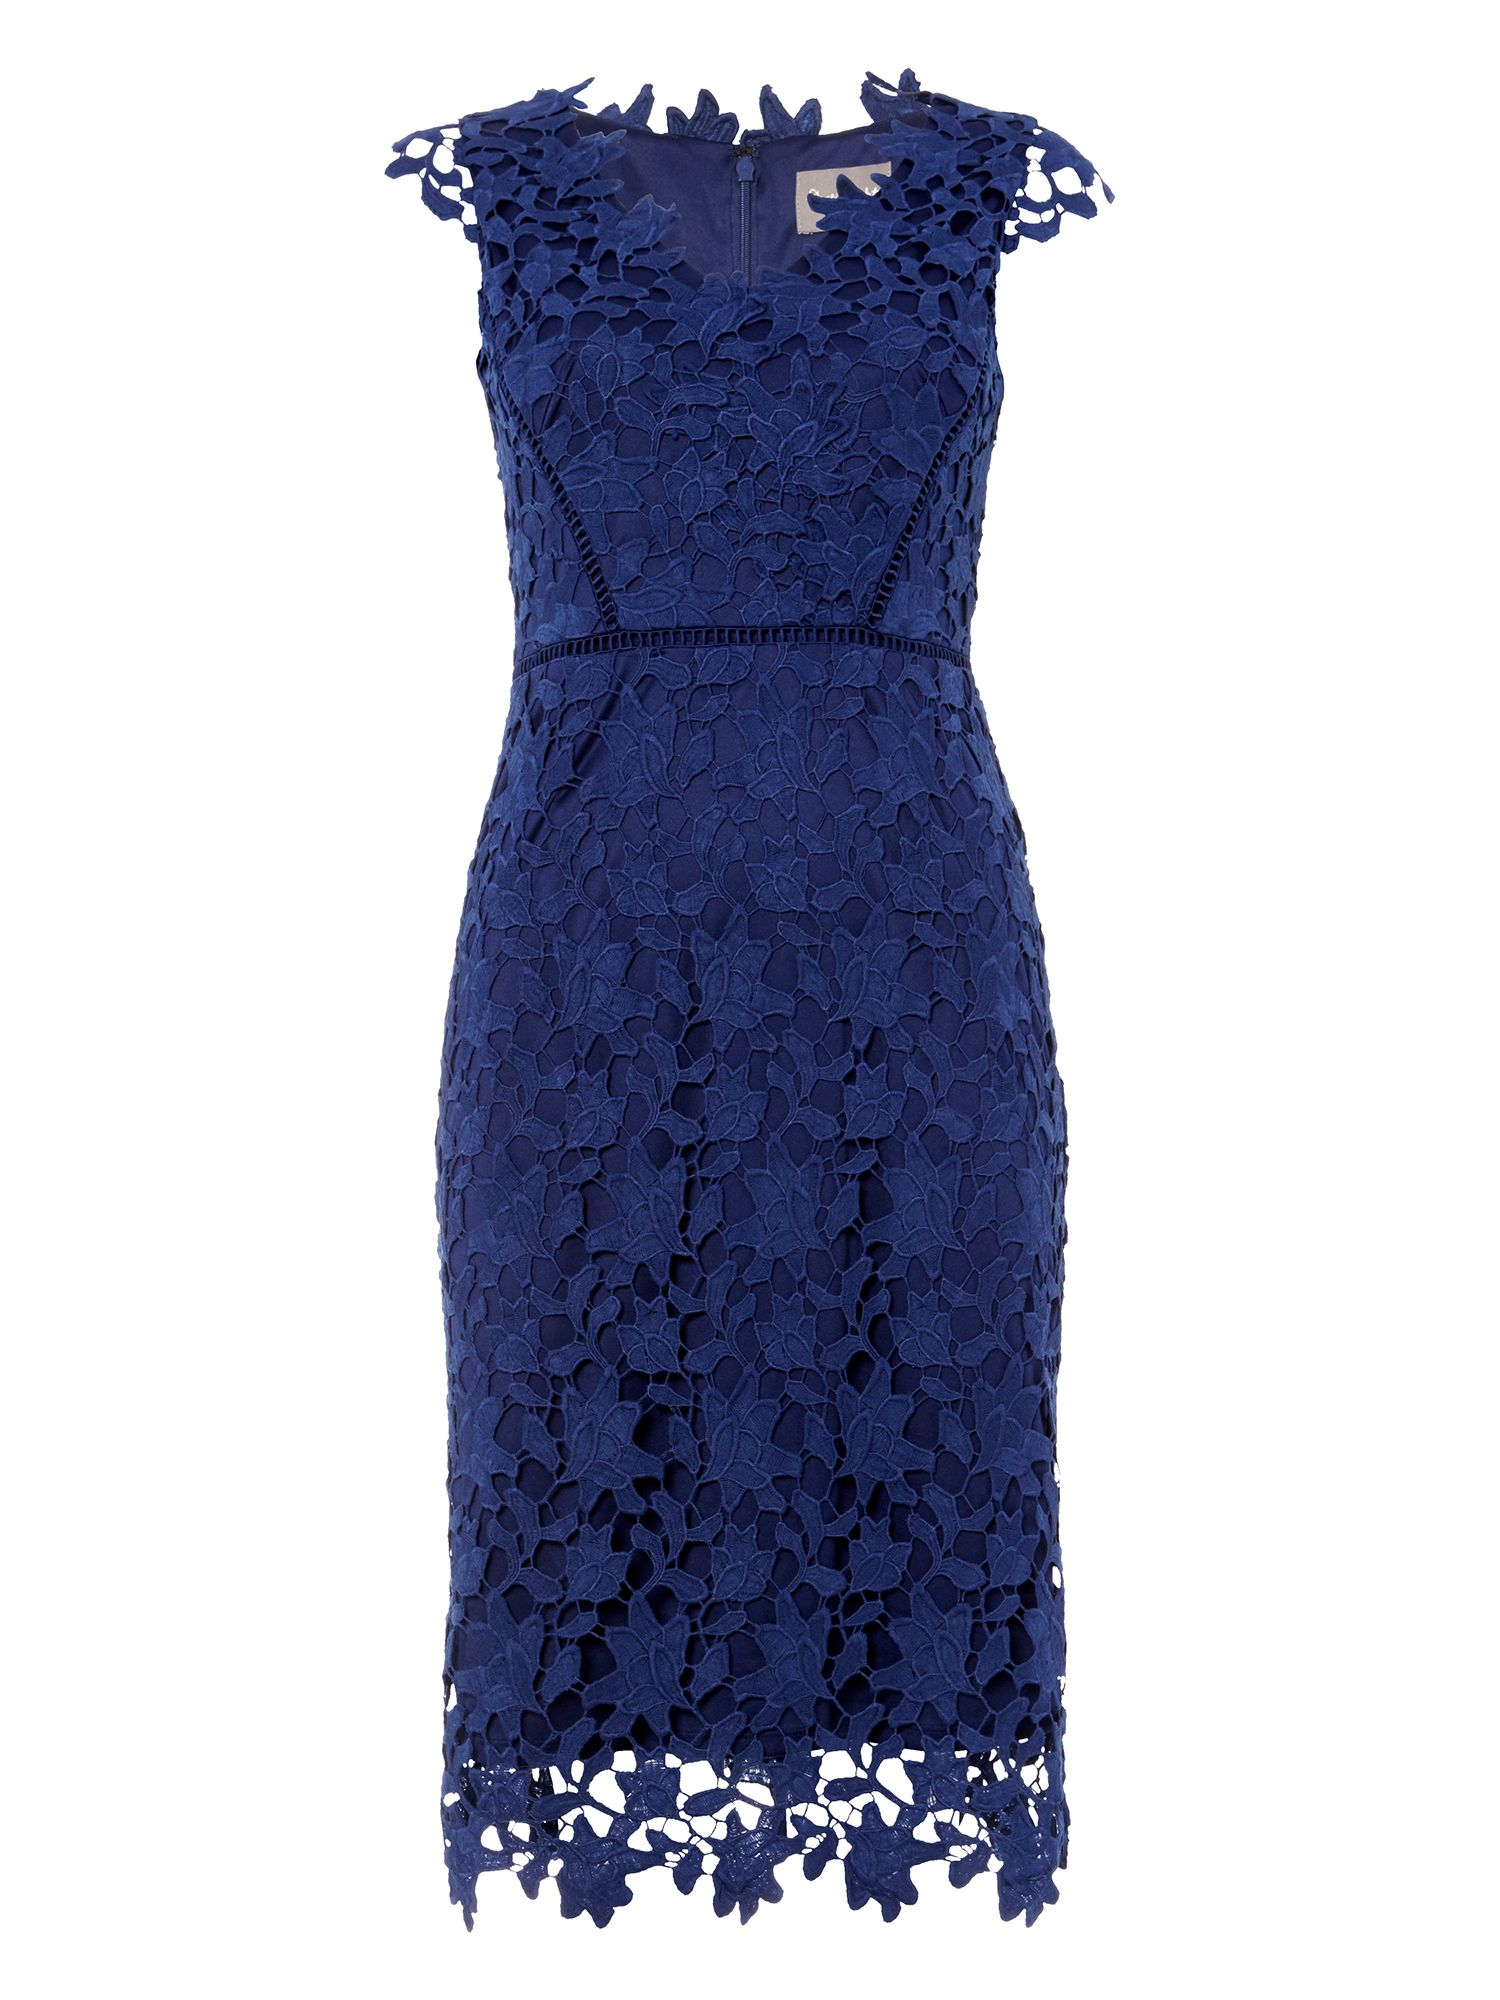 Black dress house of fraser - Phase Eight Petals Lace Dress